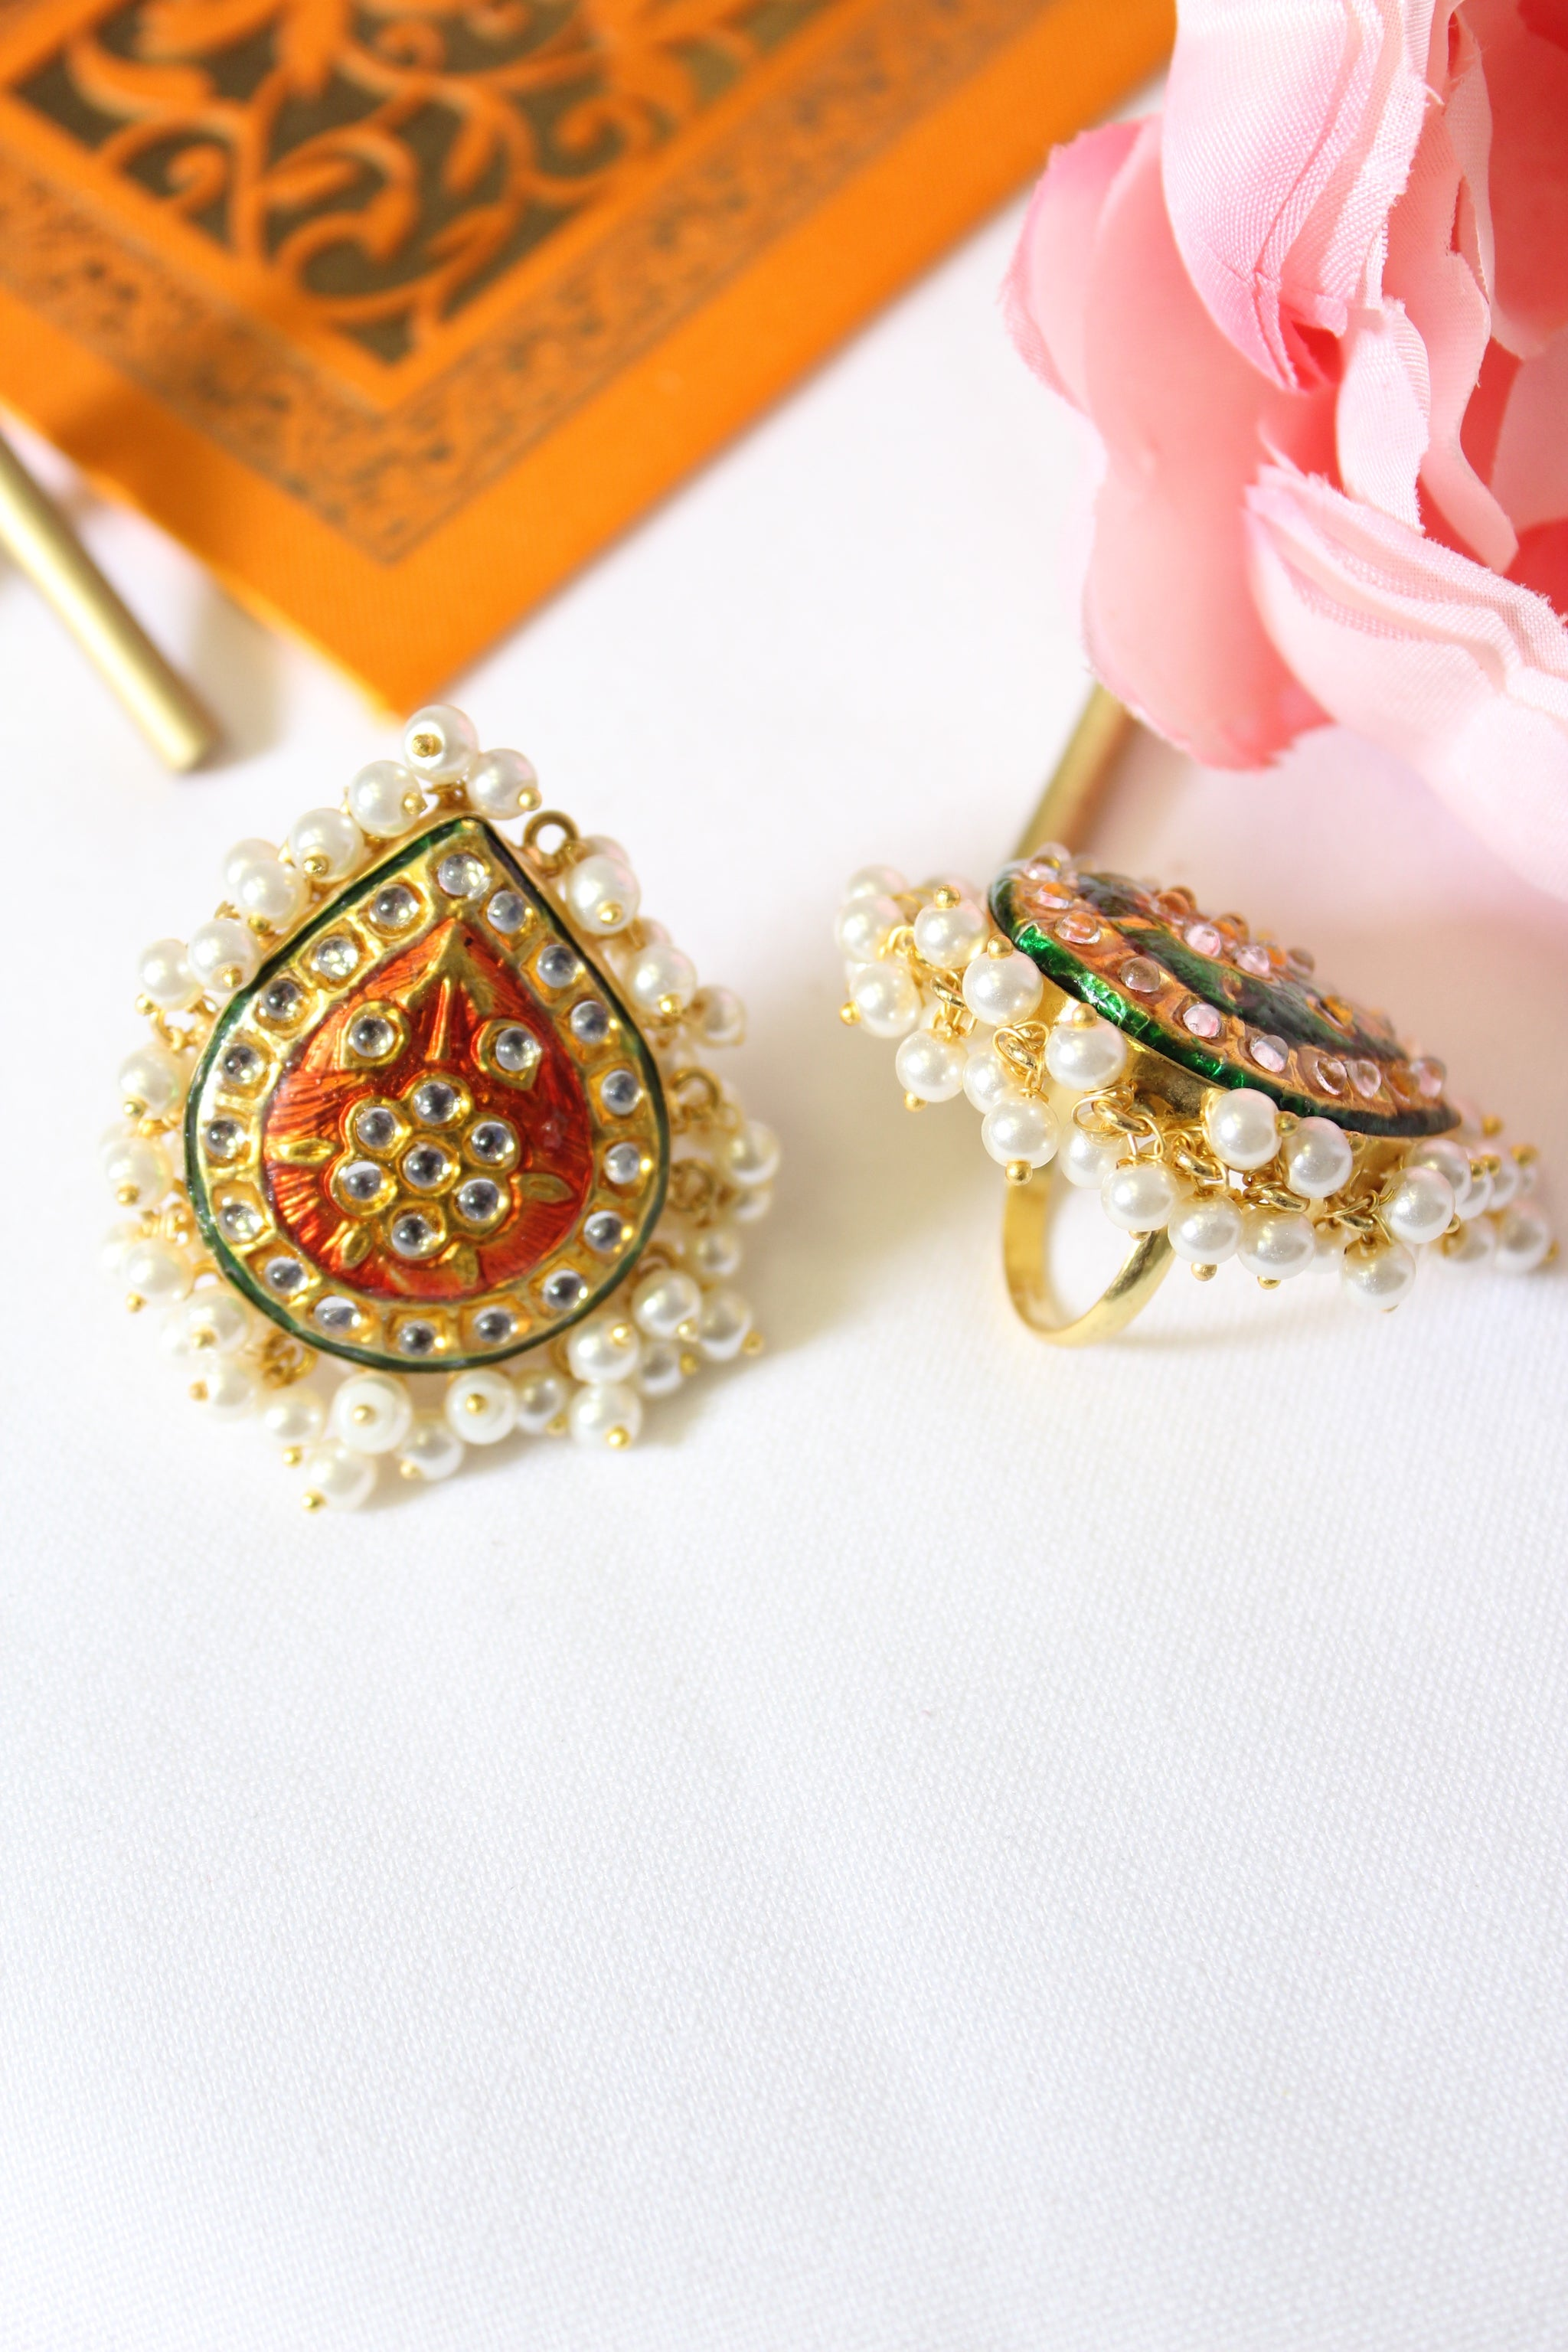 Red kundan meenakari ring lined with pearls